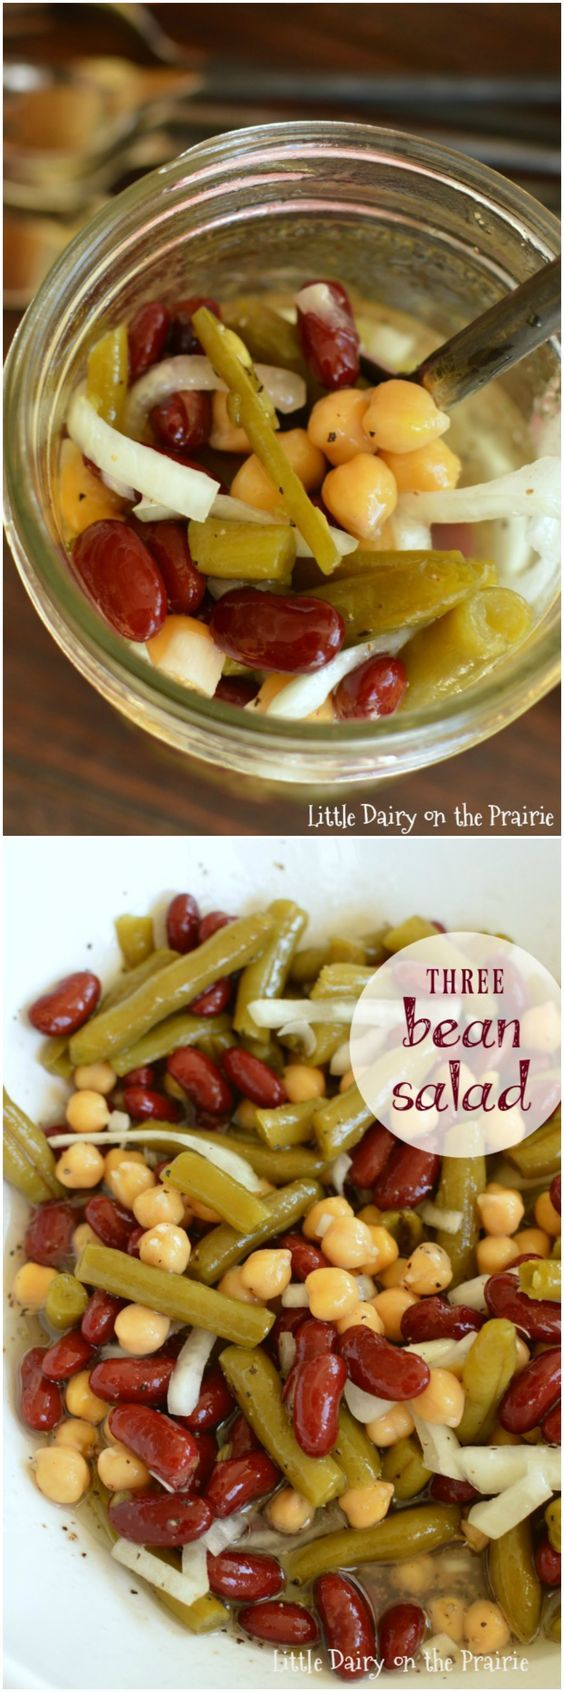 Three Bean Salad is one of my go to salads! I always have the ingredients in my pantry, its so easy to make, and every one raves about it!